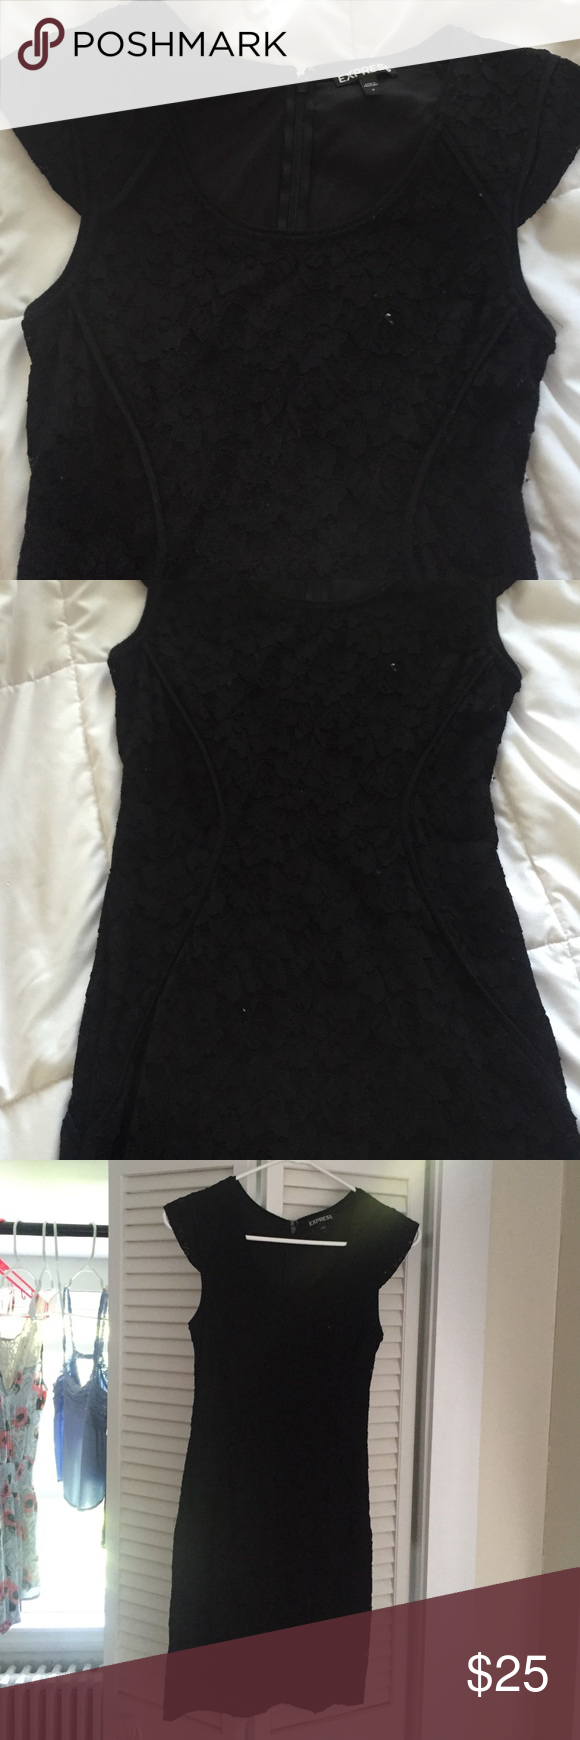 express size 0 black Lacey dress Express size 0 black Lacey dress. fitted, girly and prettty. perfect for a summer formal or semi formal event or even a night out. worn a few times in great condition.  Dresses